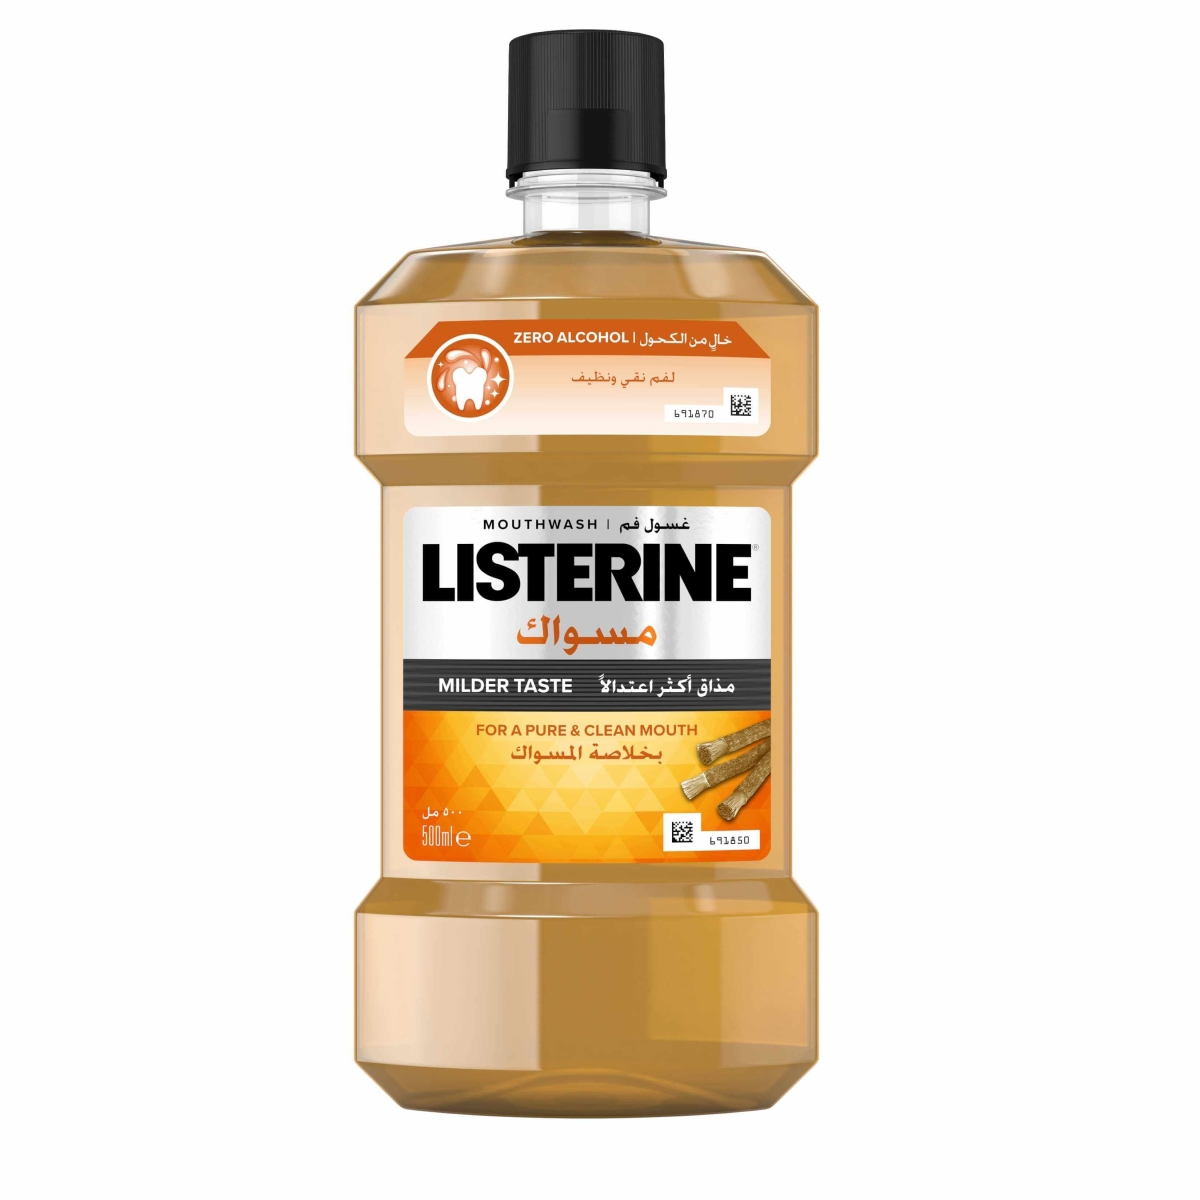 Miswak mouthwash with miswak extract from Listerine